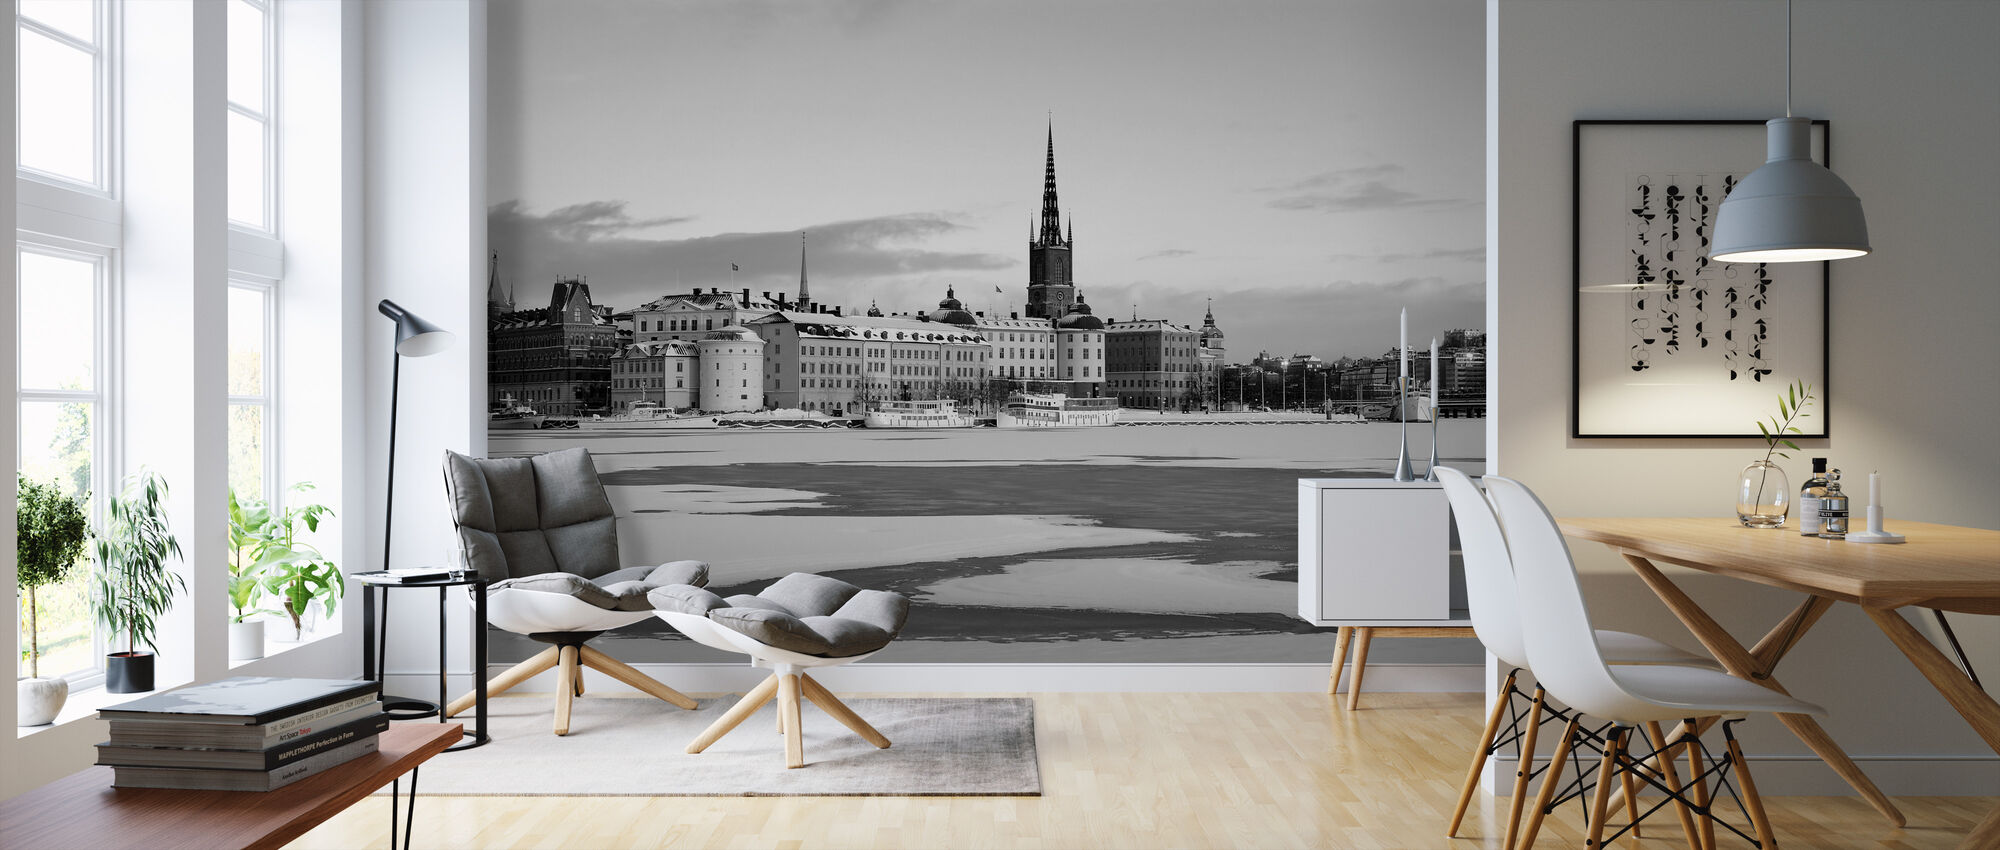 Winter in Stockholm, Sweden - Wallpaper - Living Room